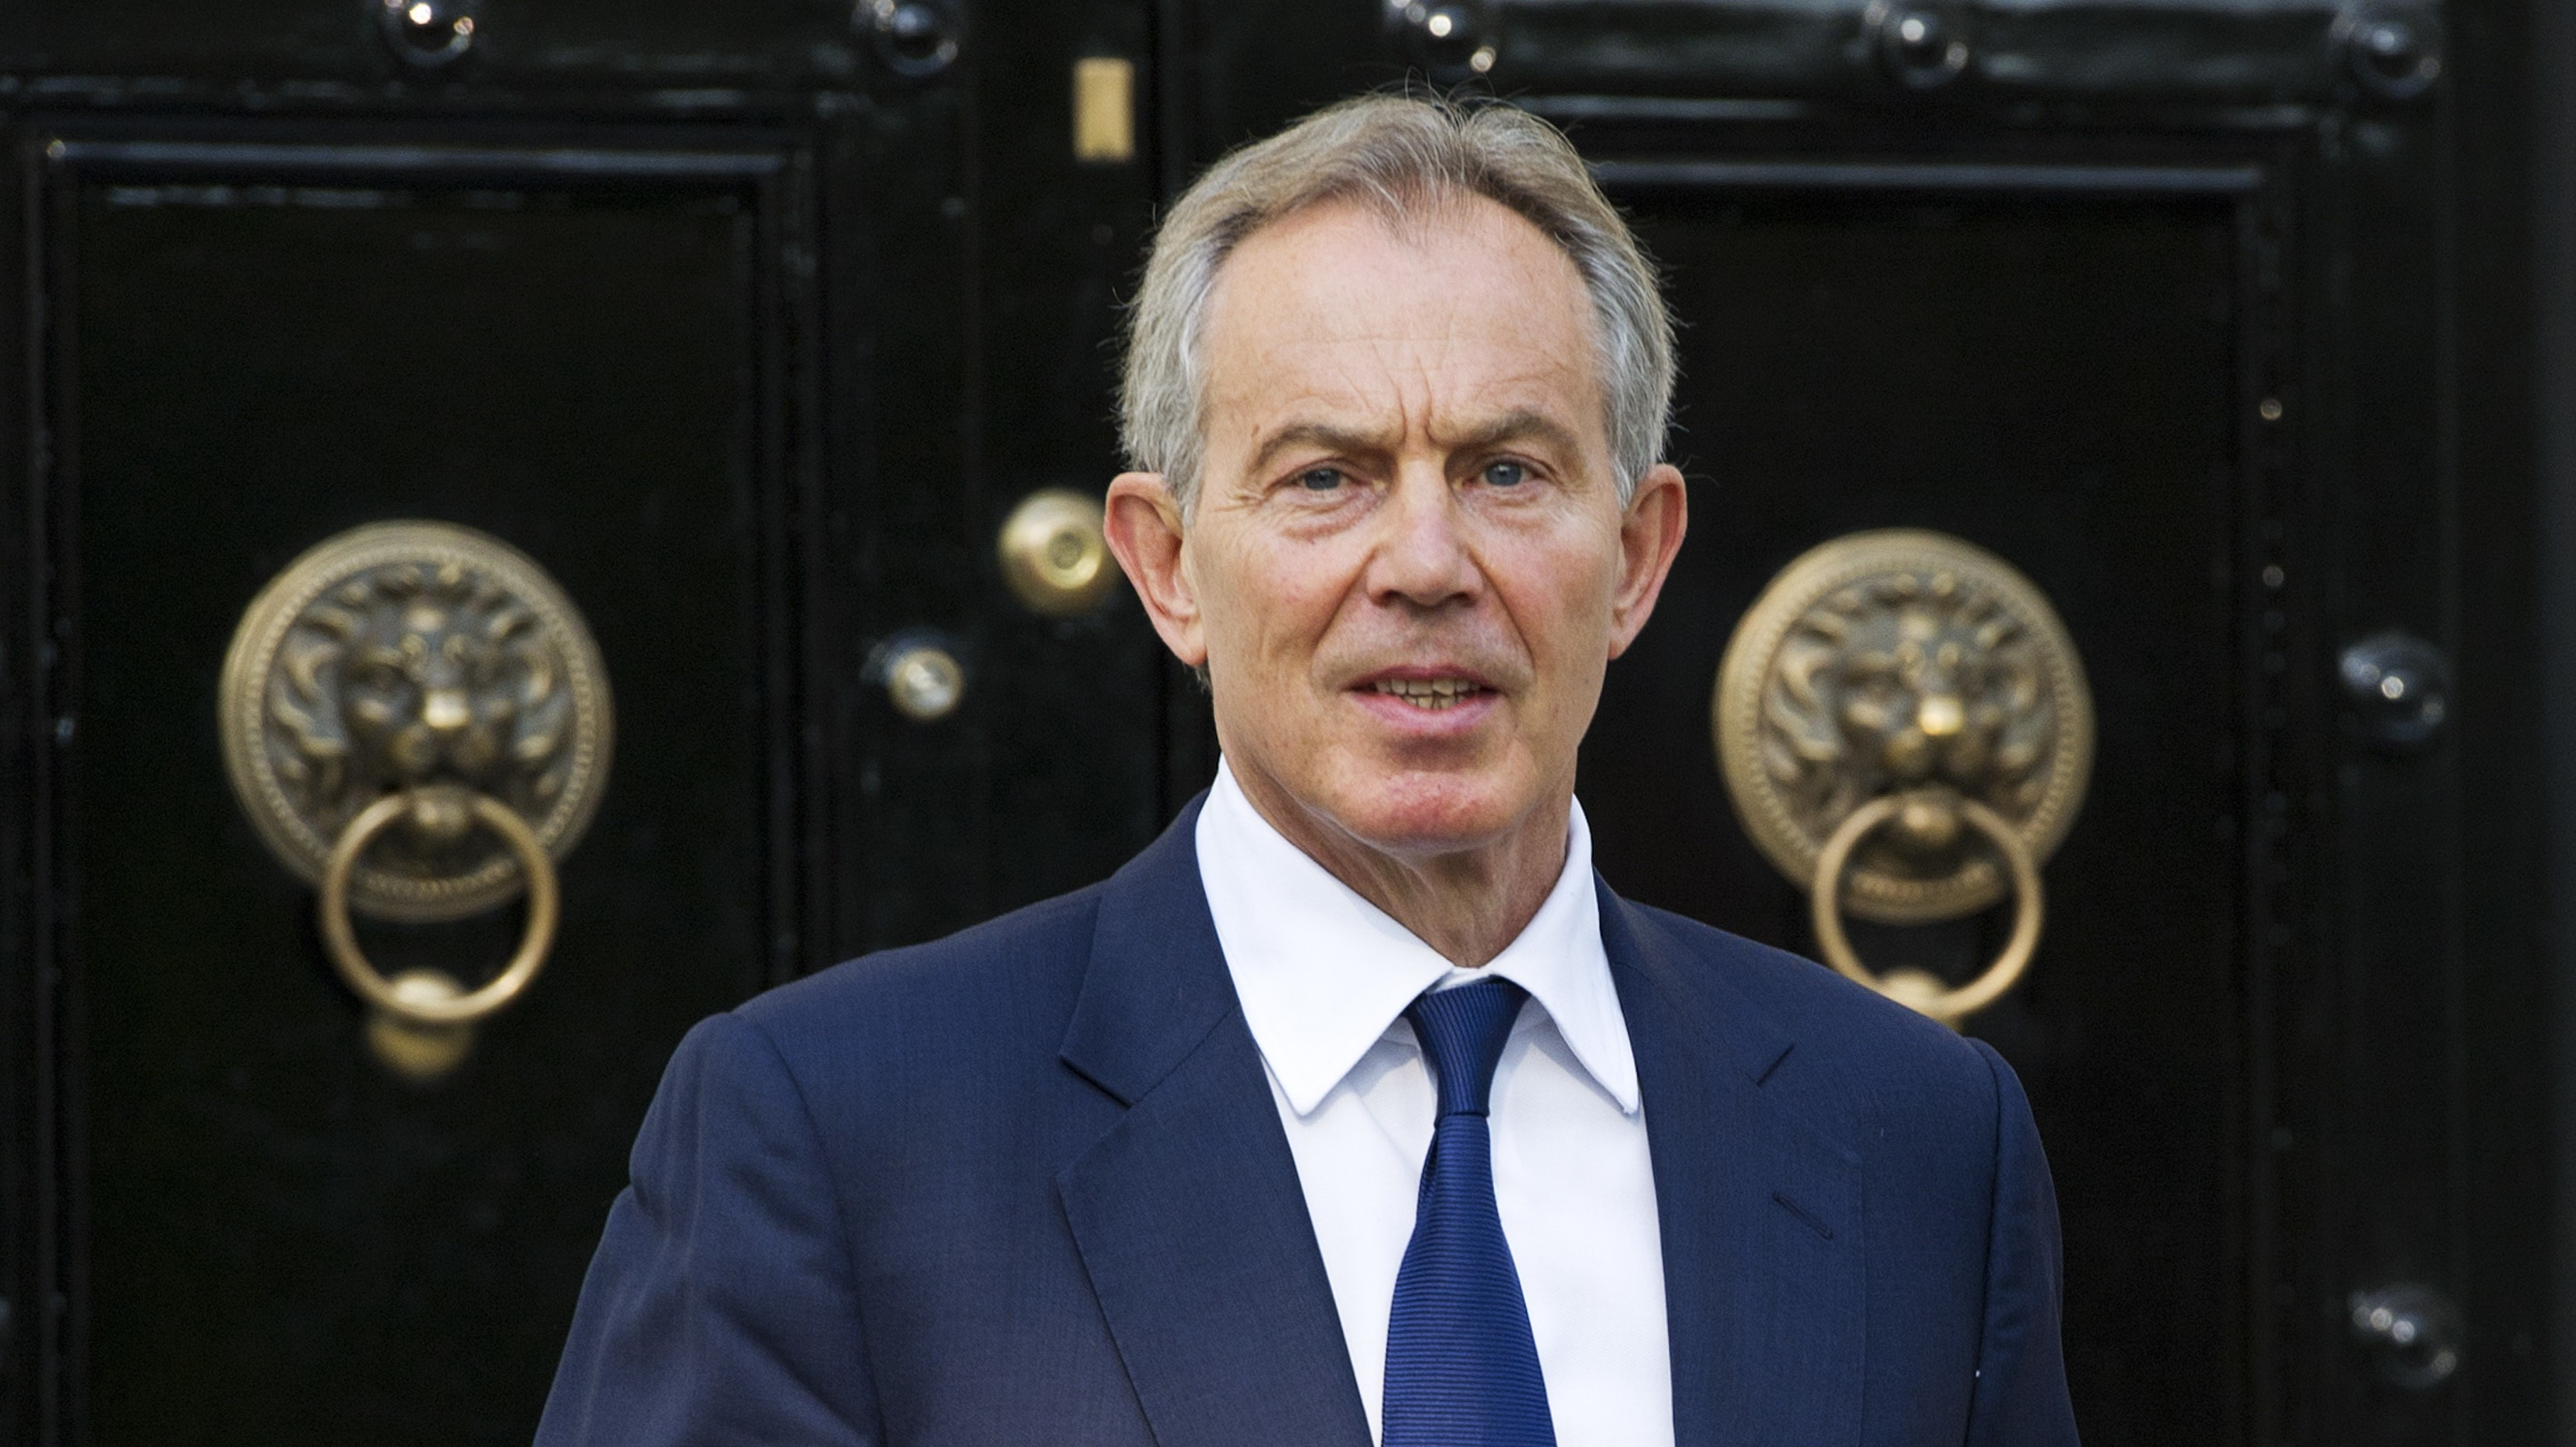 Tony Blair Resigns from Middle East Envoy Position, Official Says